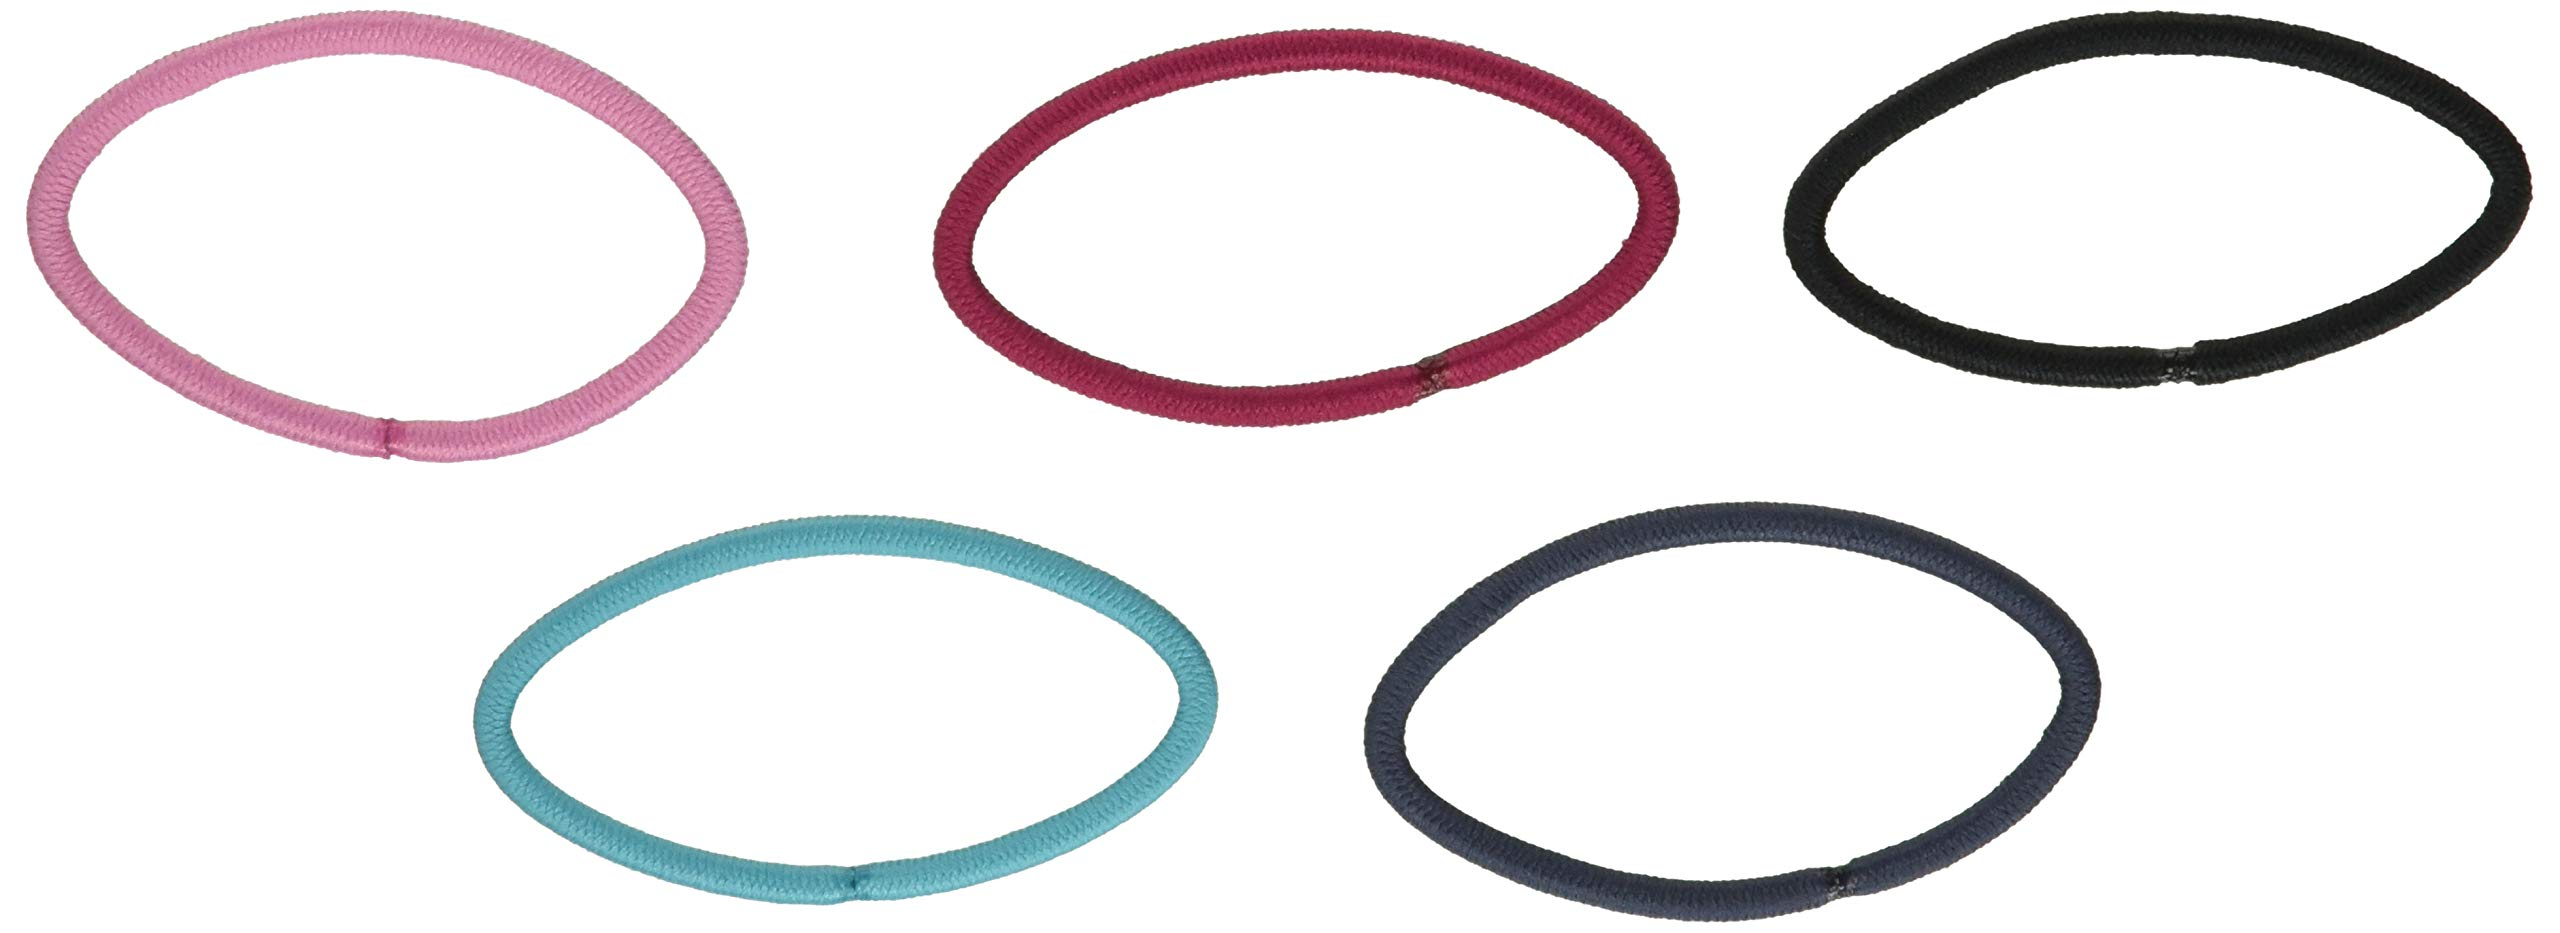 Scunci Effortless Beauty Large No-damage Pastel Elastics, 30-Count (Colors May Vary)